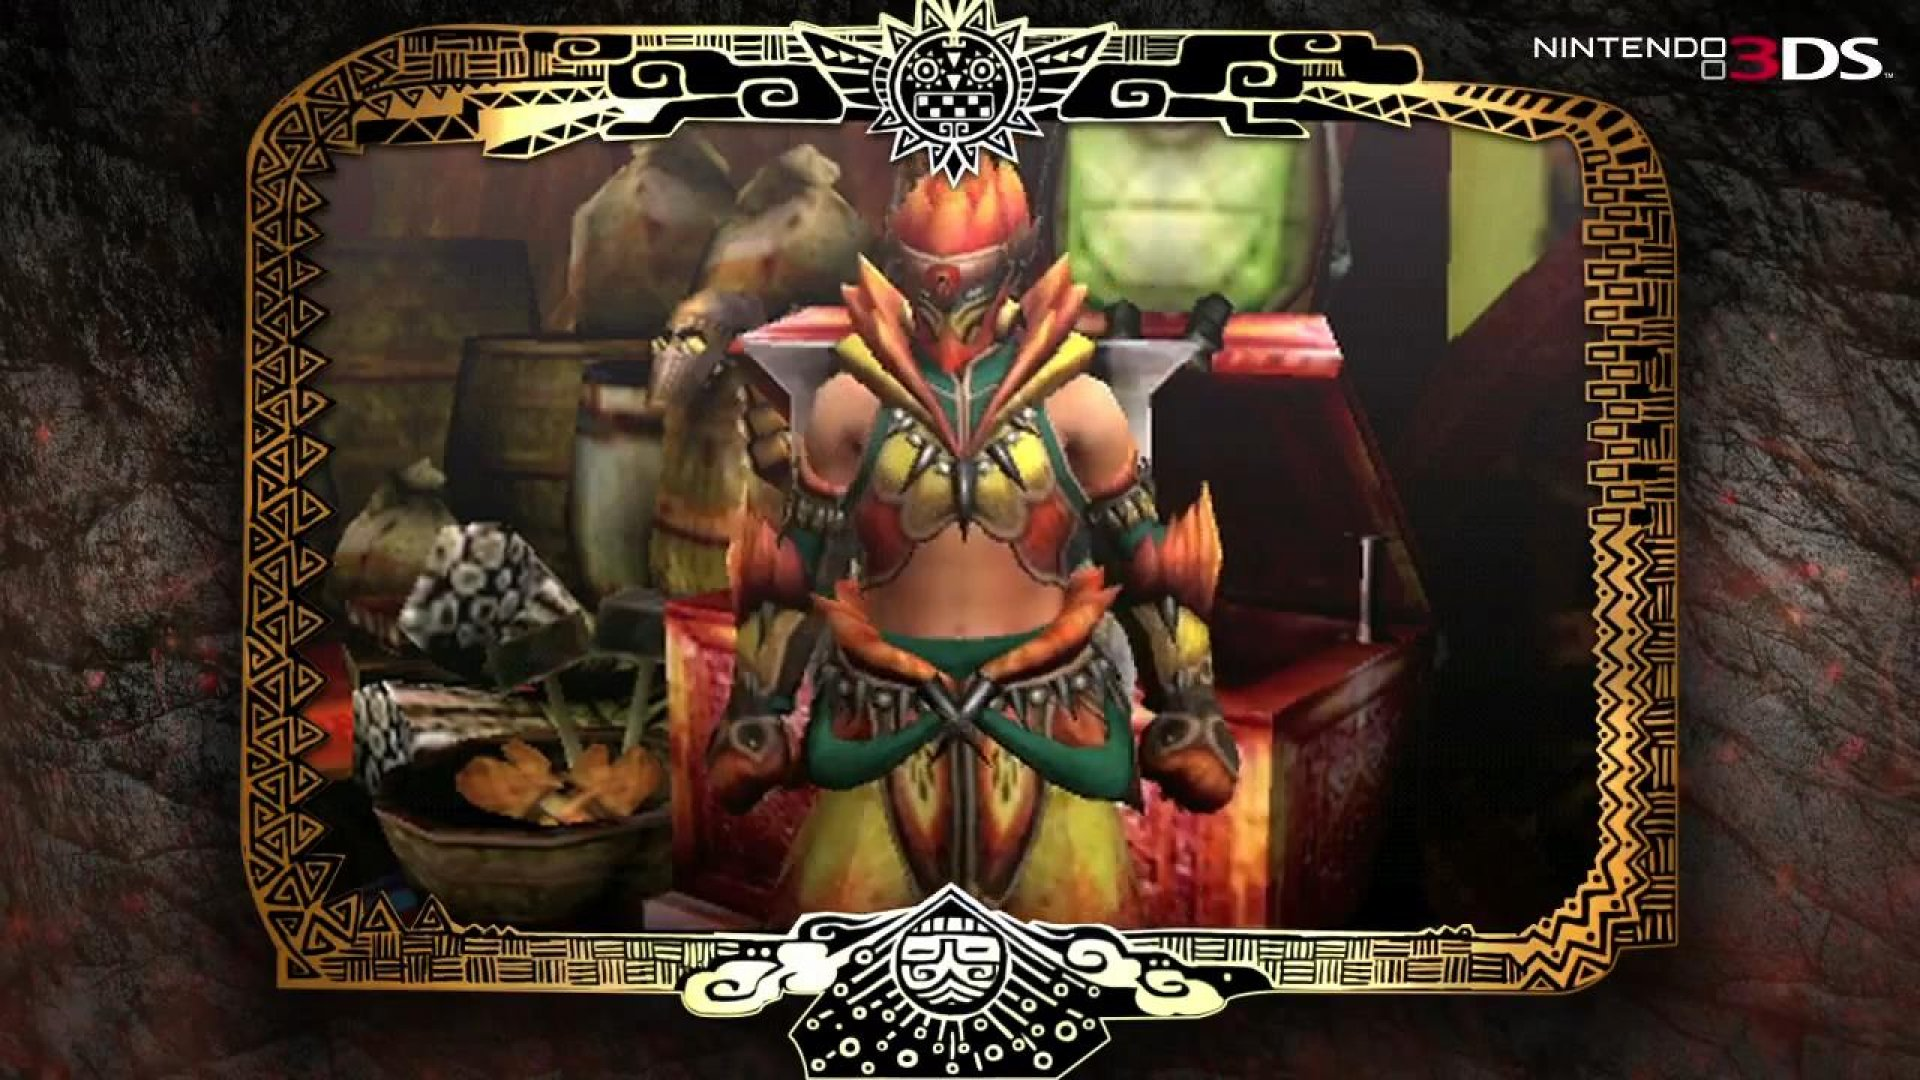 Monster hunter 4 ultimate porn porn galleries